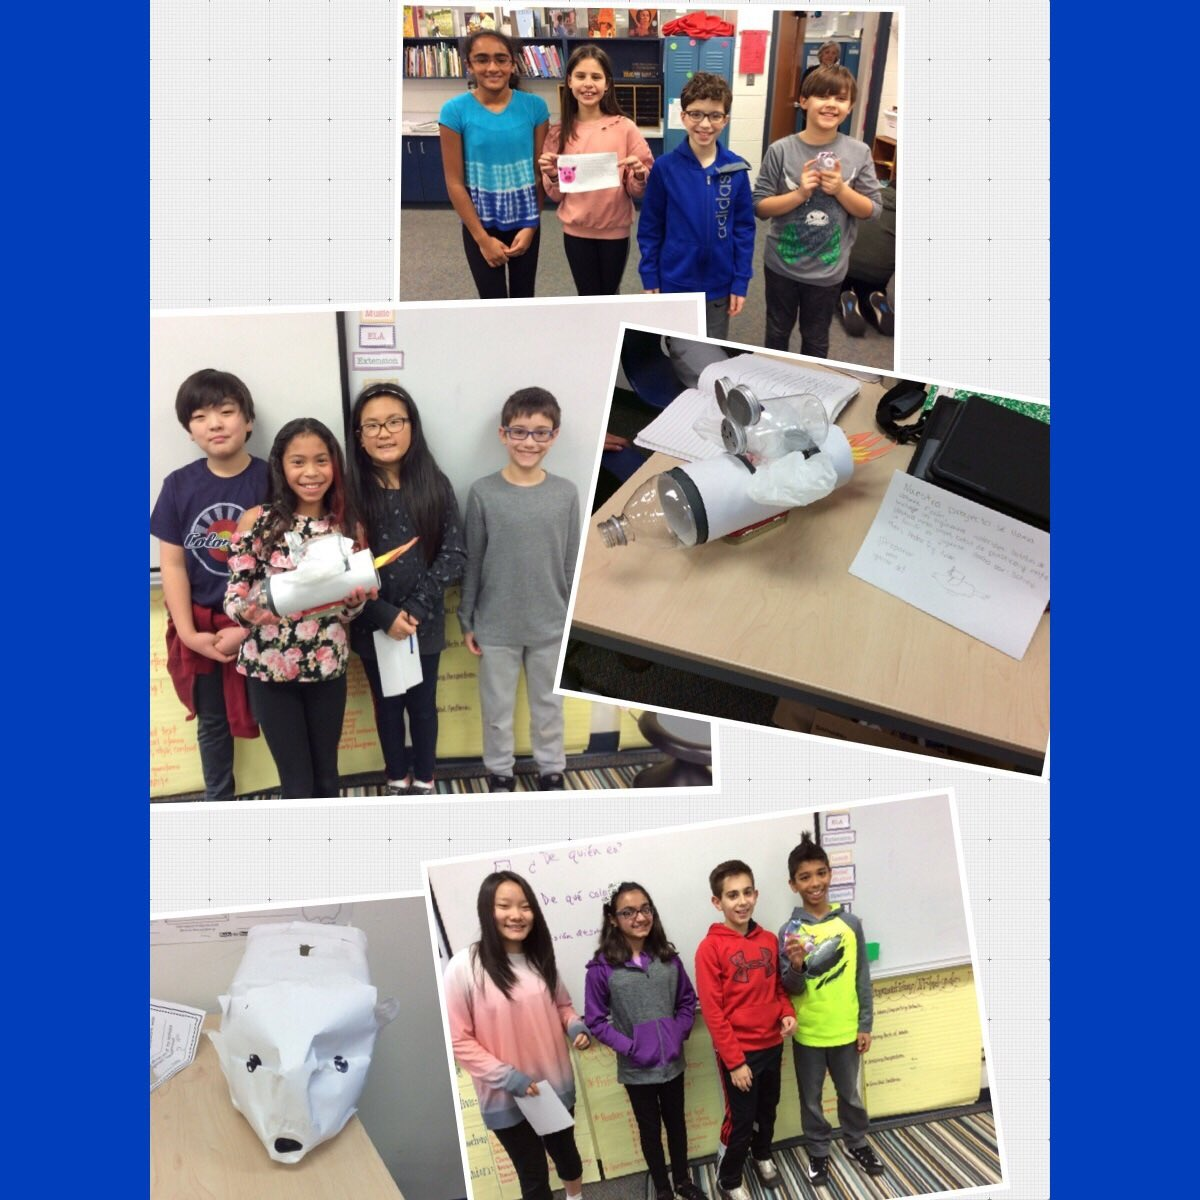 test Twitter Media - Thinking outside of the (plastic) box to reuse and help the world! 5th graders explored the effects of plastic on the environment, and converse en español about solutions, including this! #d30learns #bewillowbrook @willowbrook5F https://t.co/30esKVZtjX